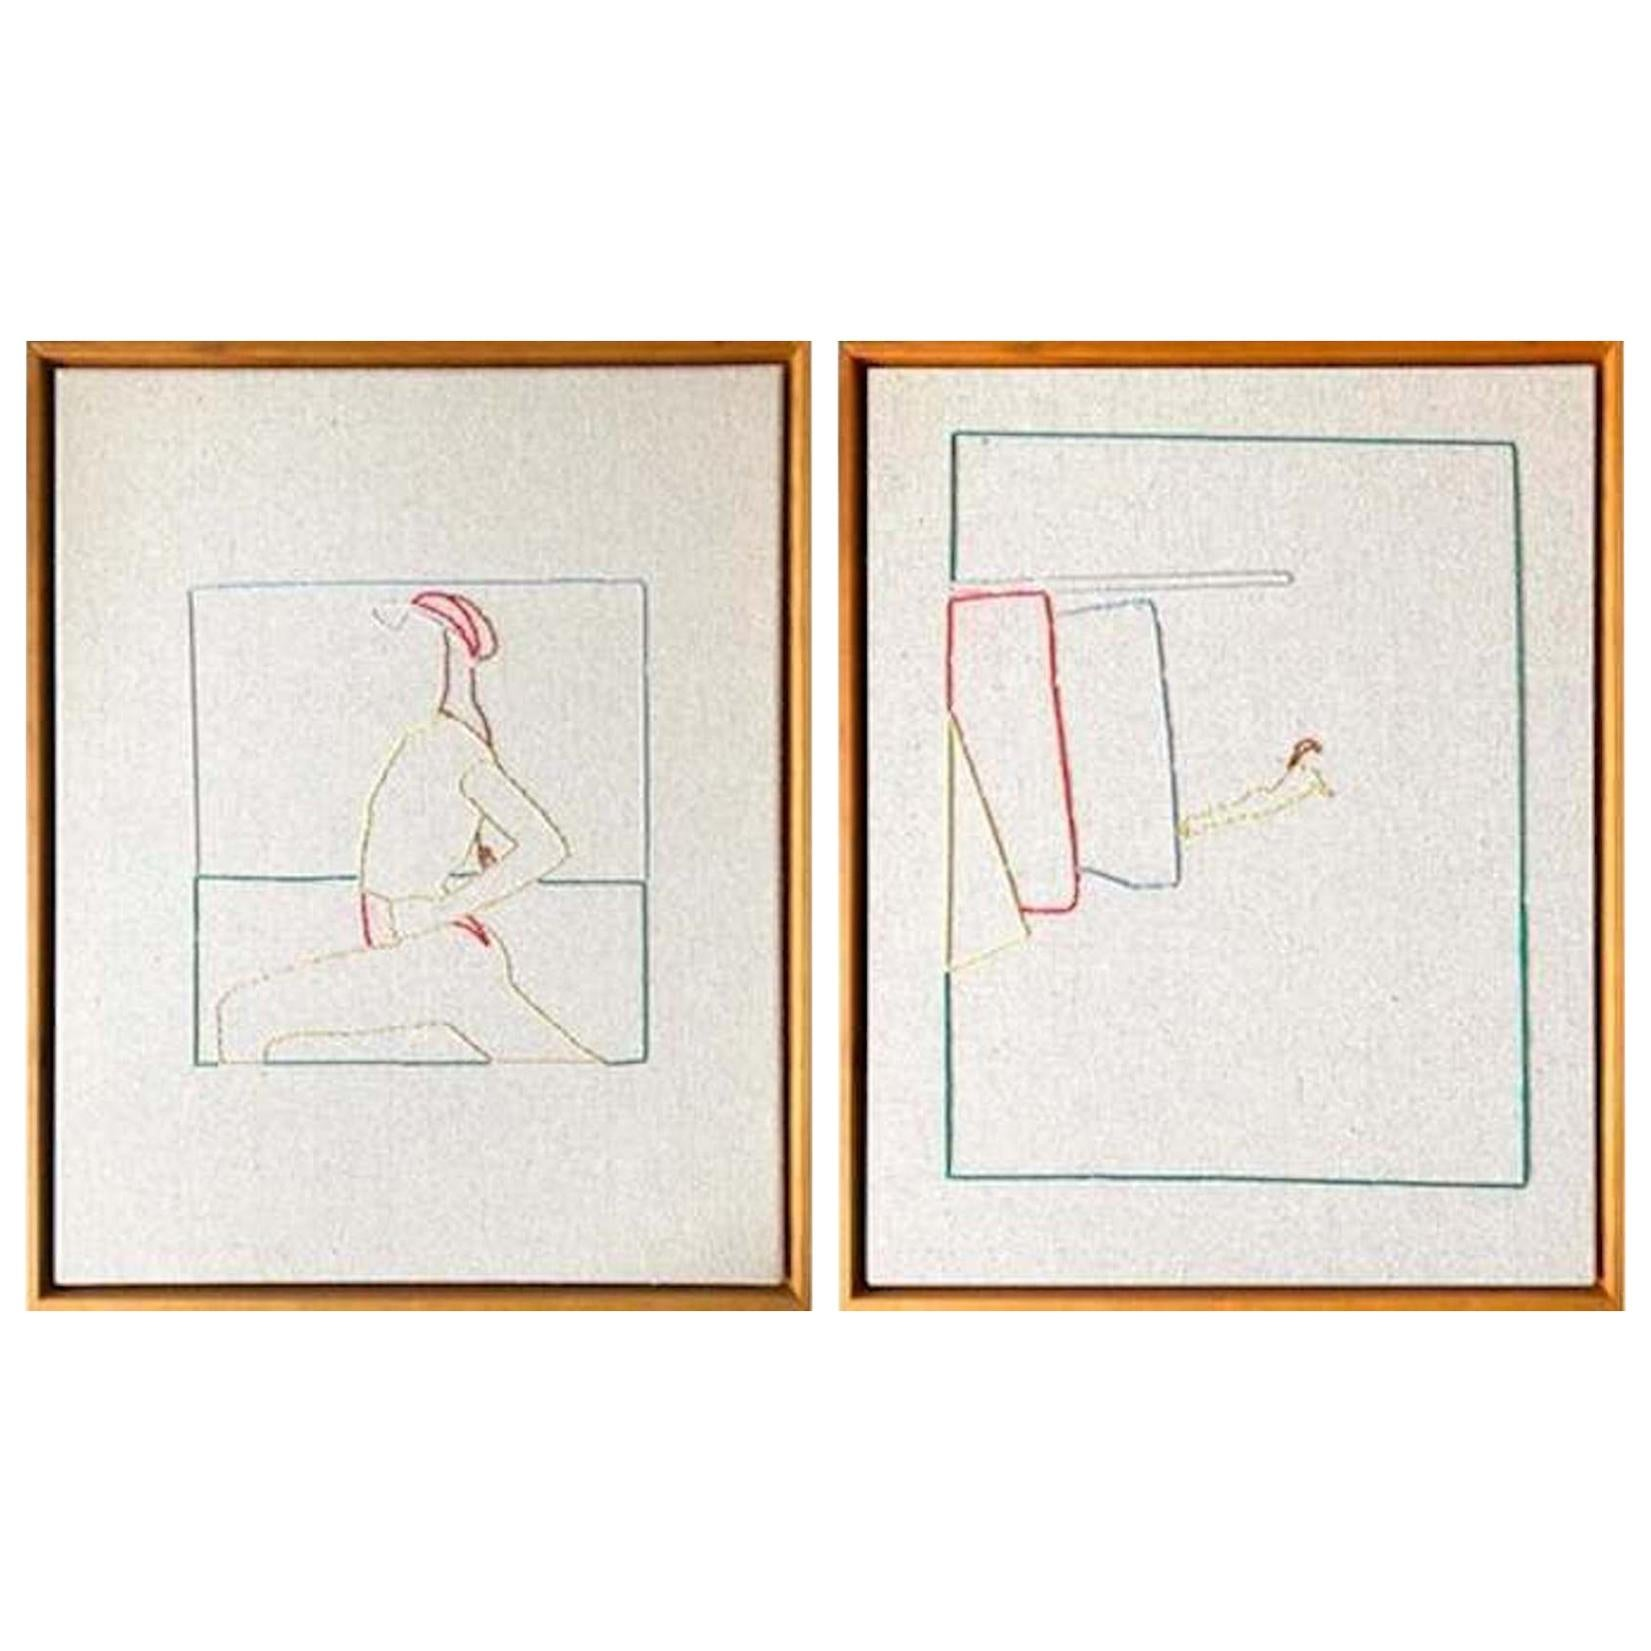 Lawn Tennis Diptych Hand Stitched Canvas, Framed on Cherrywood